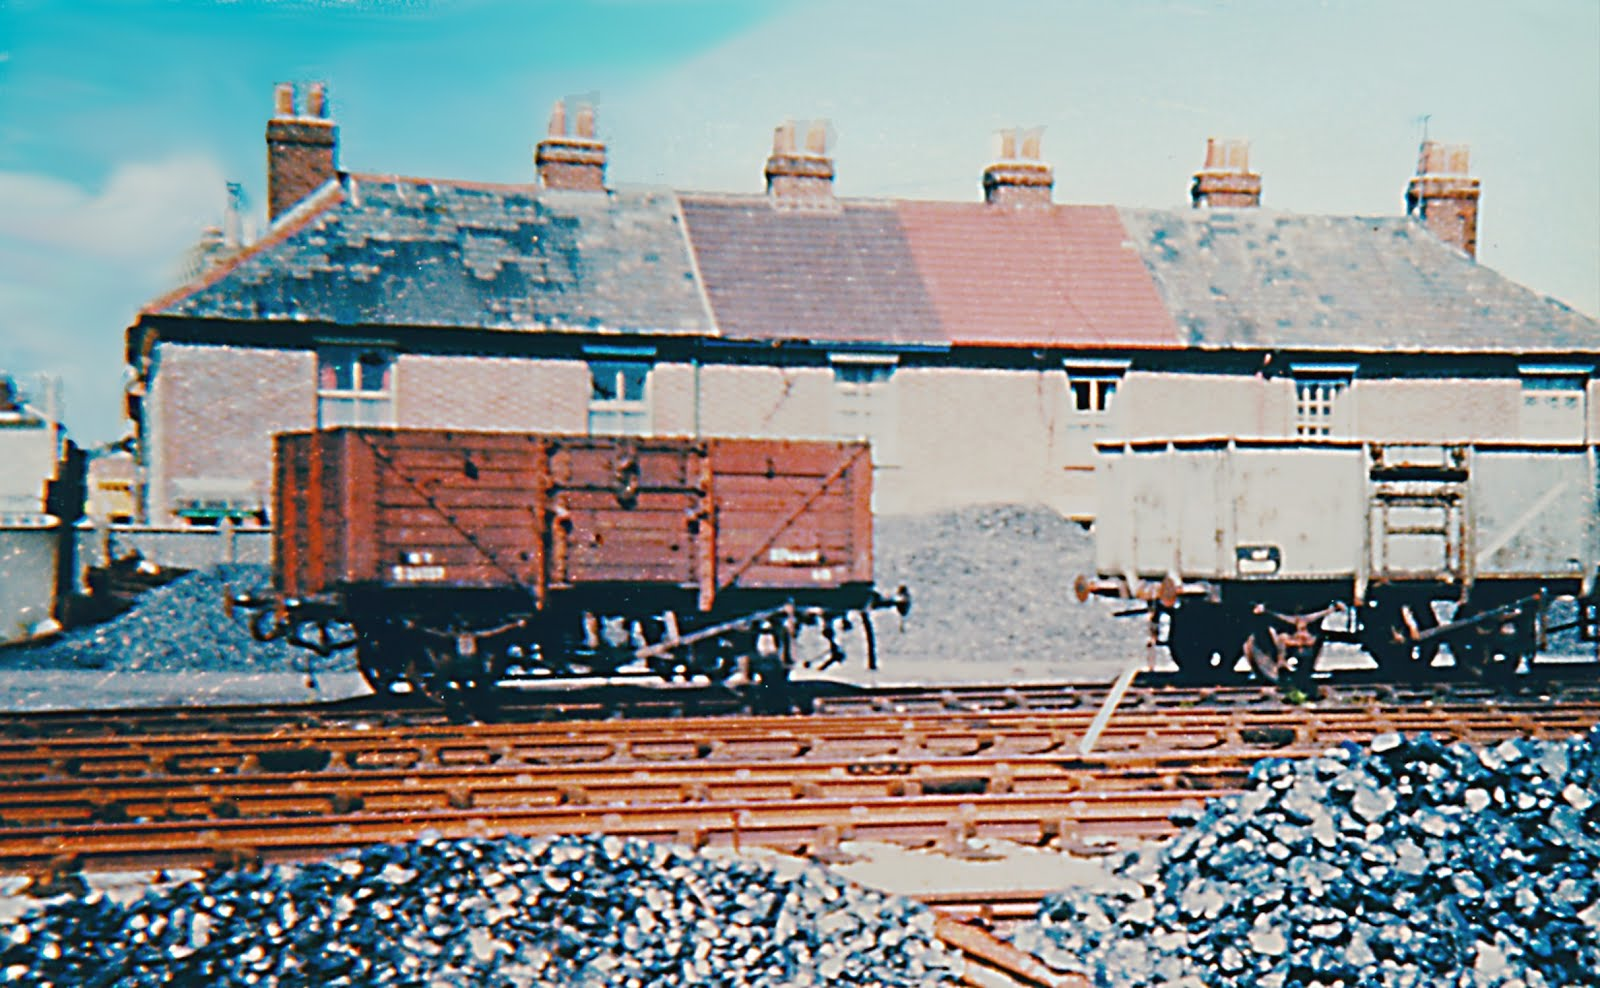 Wagon in Goods Yard